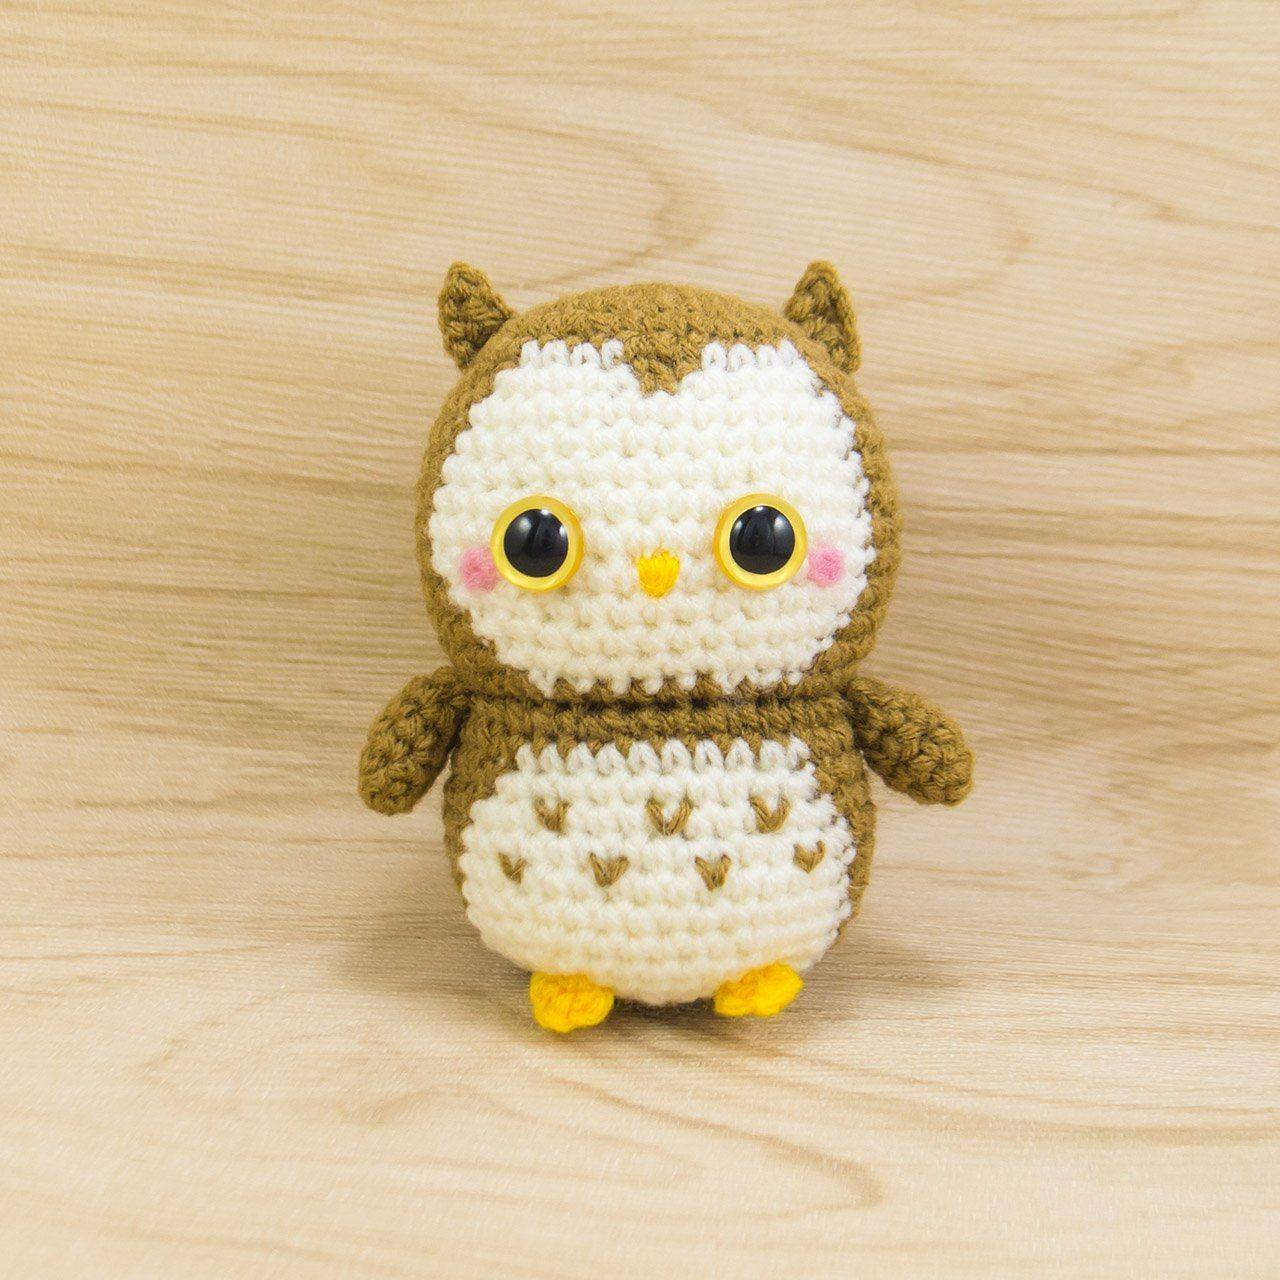 Soren the Barn Owl Free Crochet Pattern ⋆ Crochet Kingdom | 1280x1280